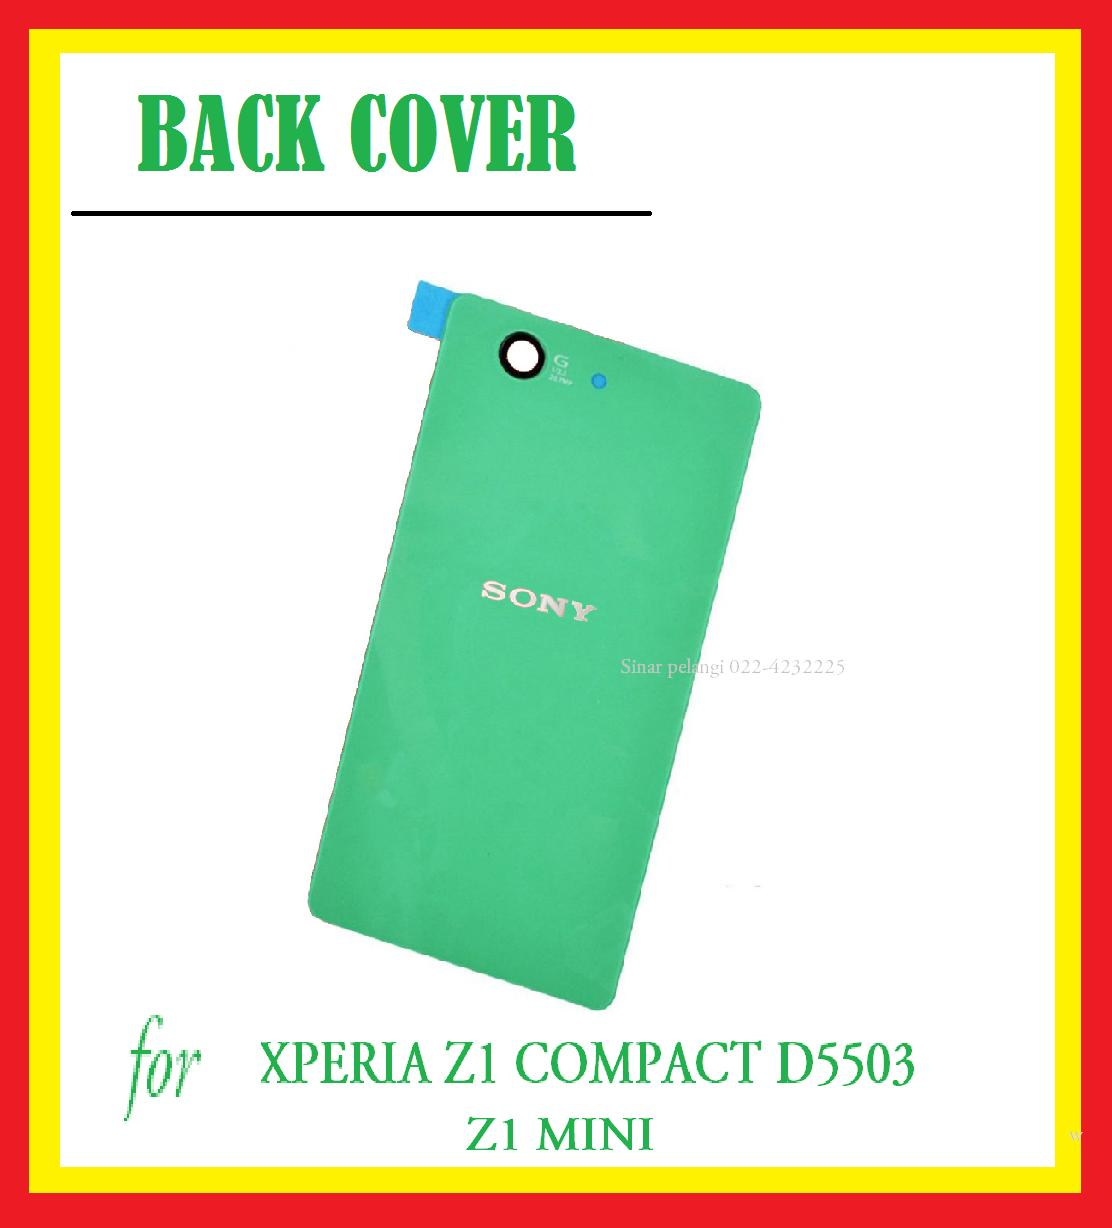 Jual Micro Usb To Magnetic Charger Connector Adapter Sony Xperia Z3 Back Cover Tutup Battre Z1 Compact D5503 Mini Green Original Battery Baterai